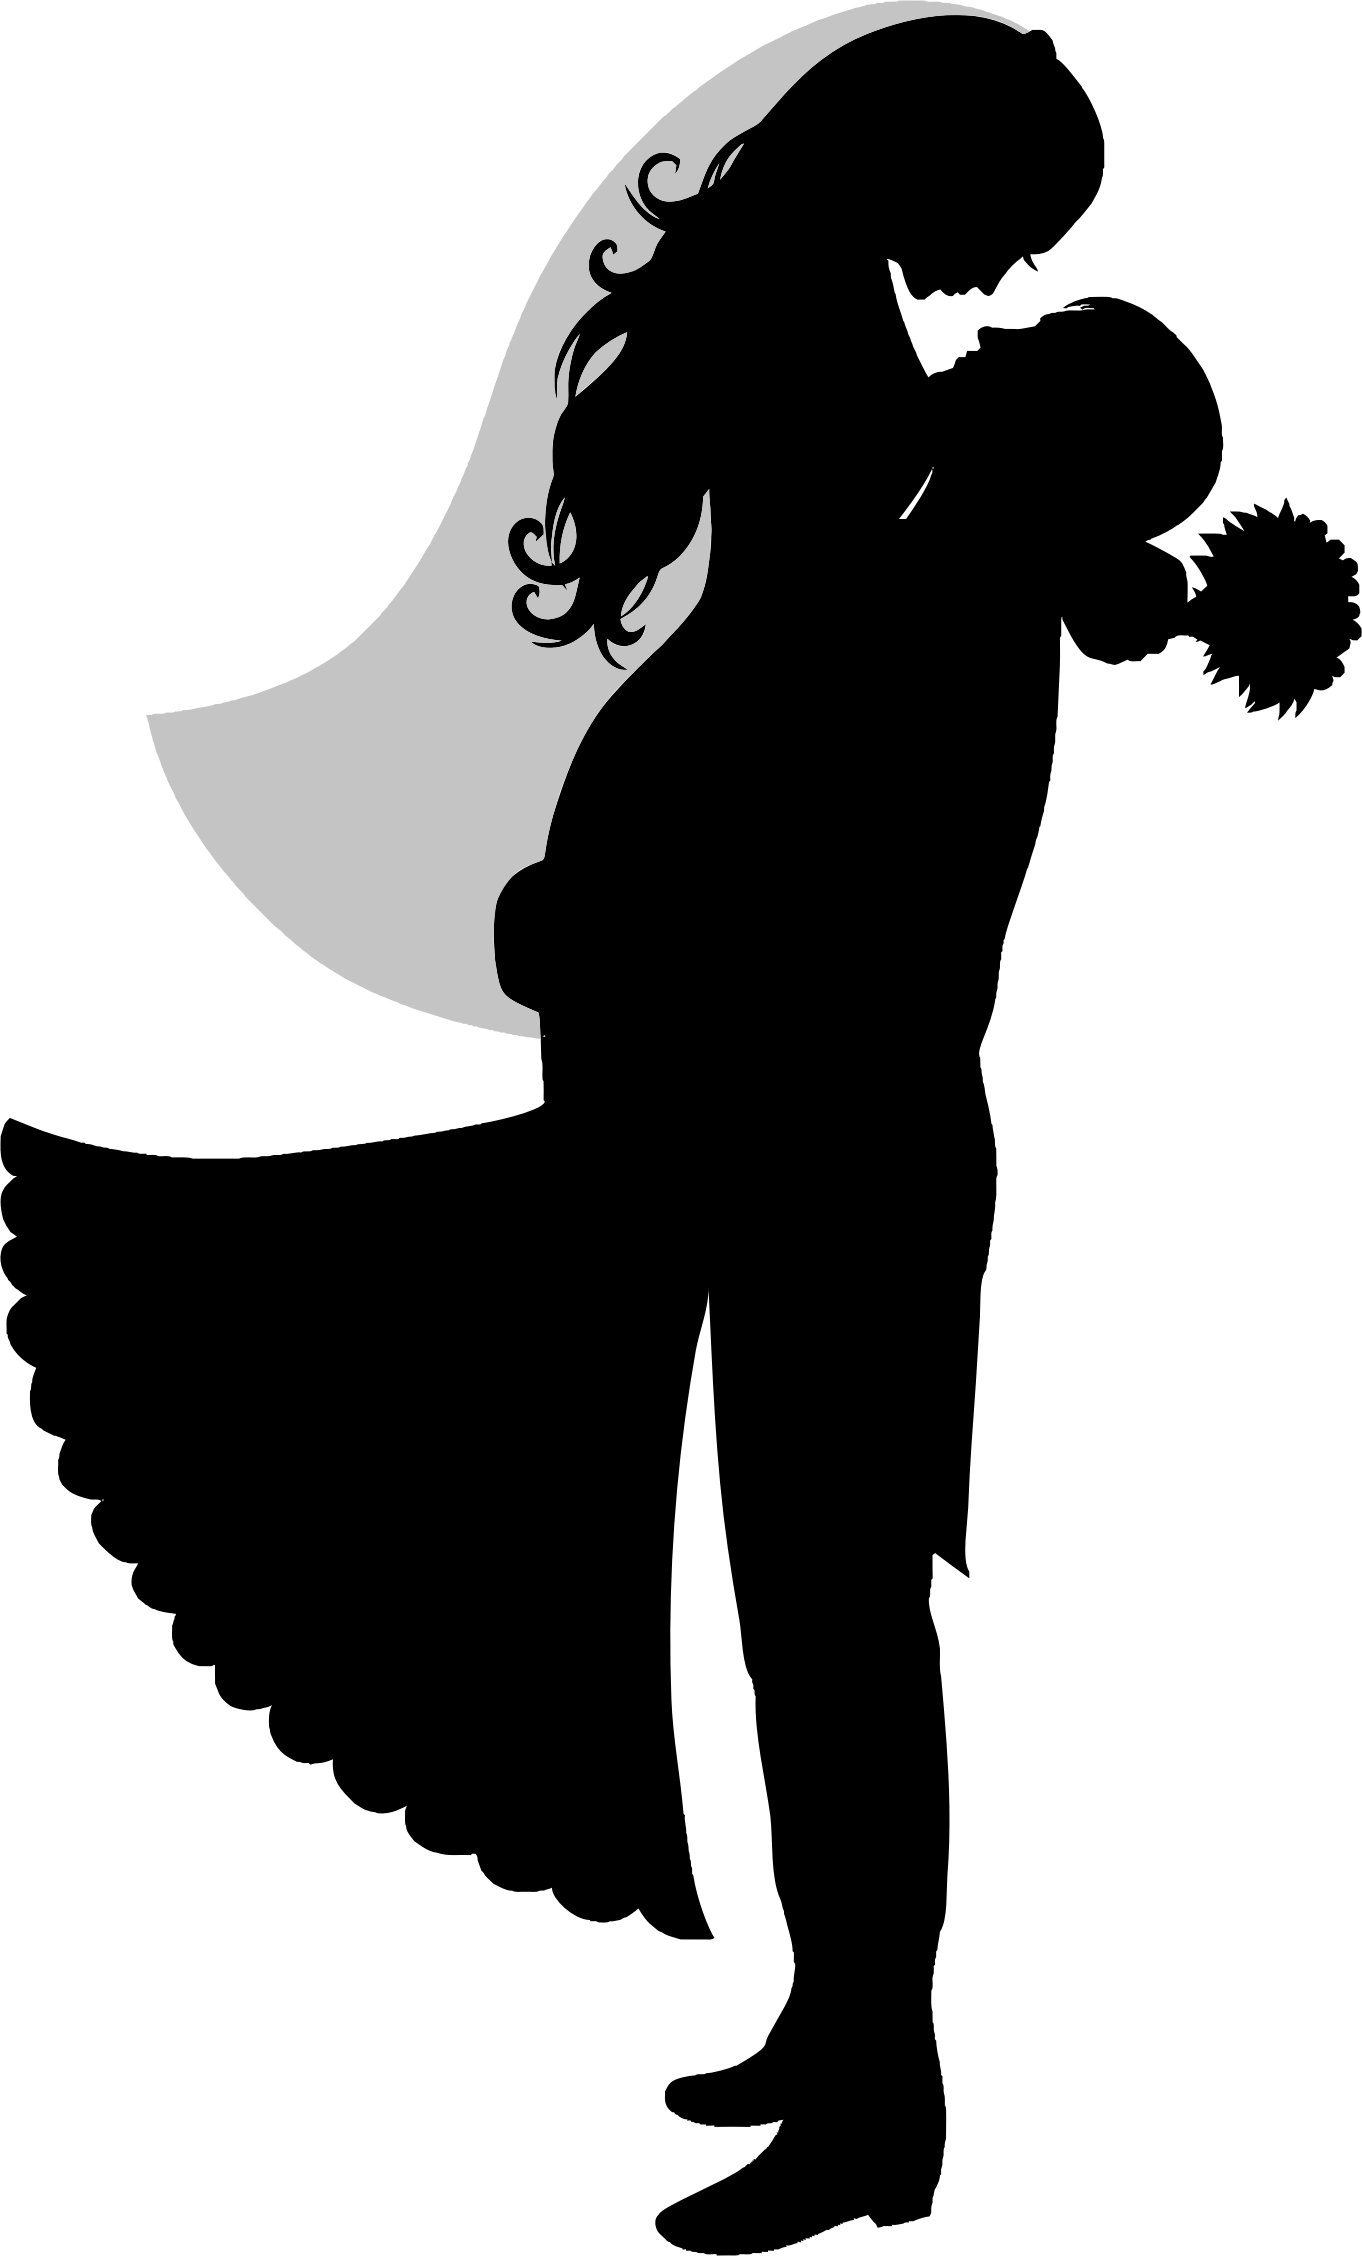 Bride and groom silhouette png. Icons free downloads this